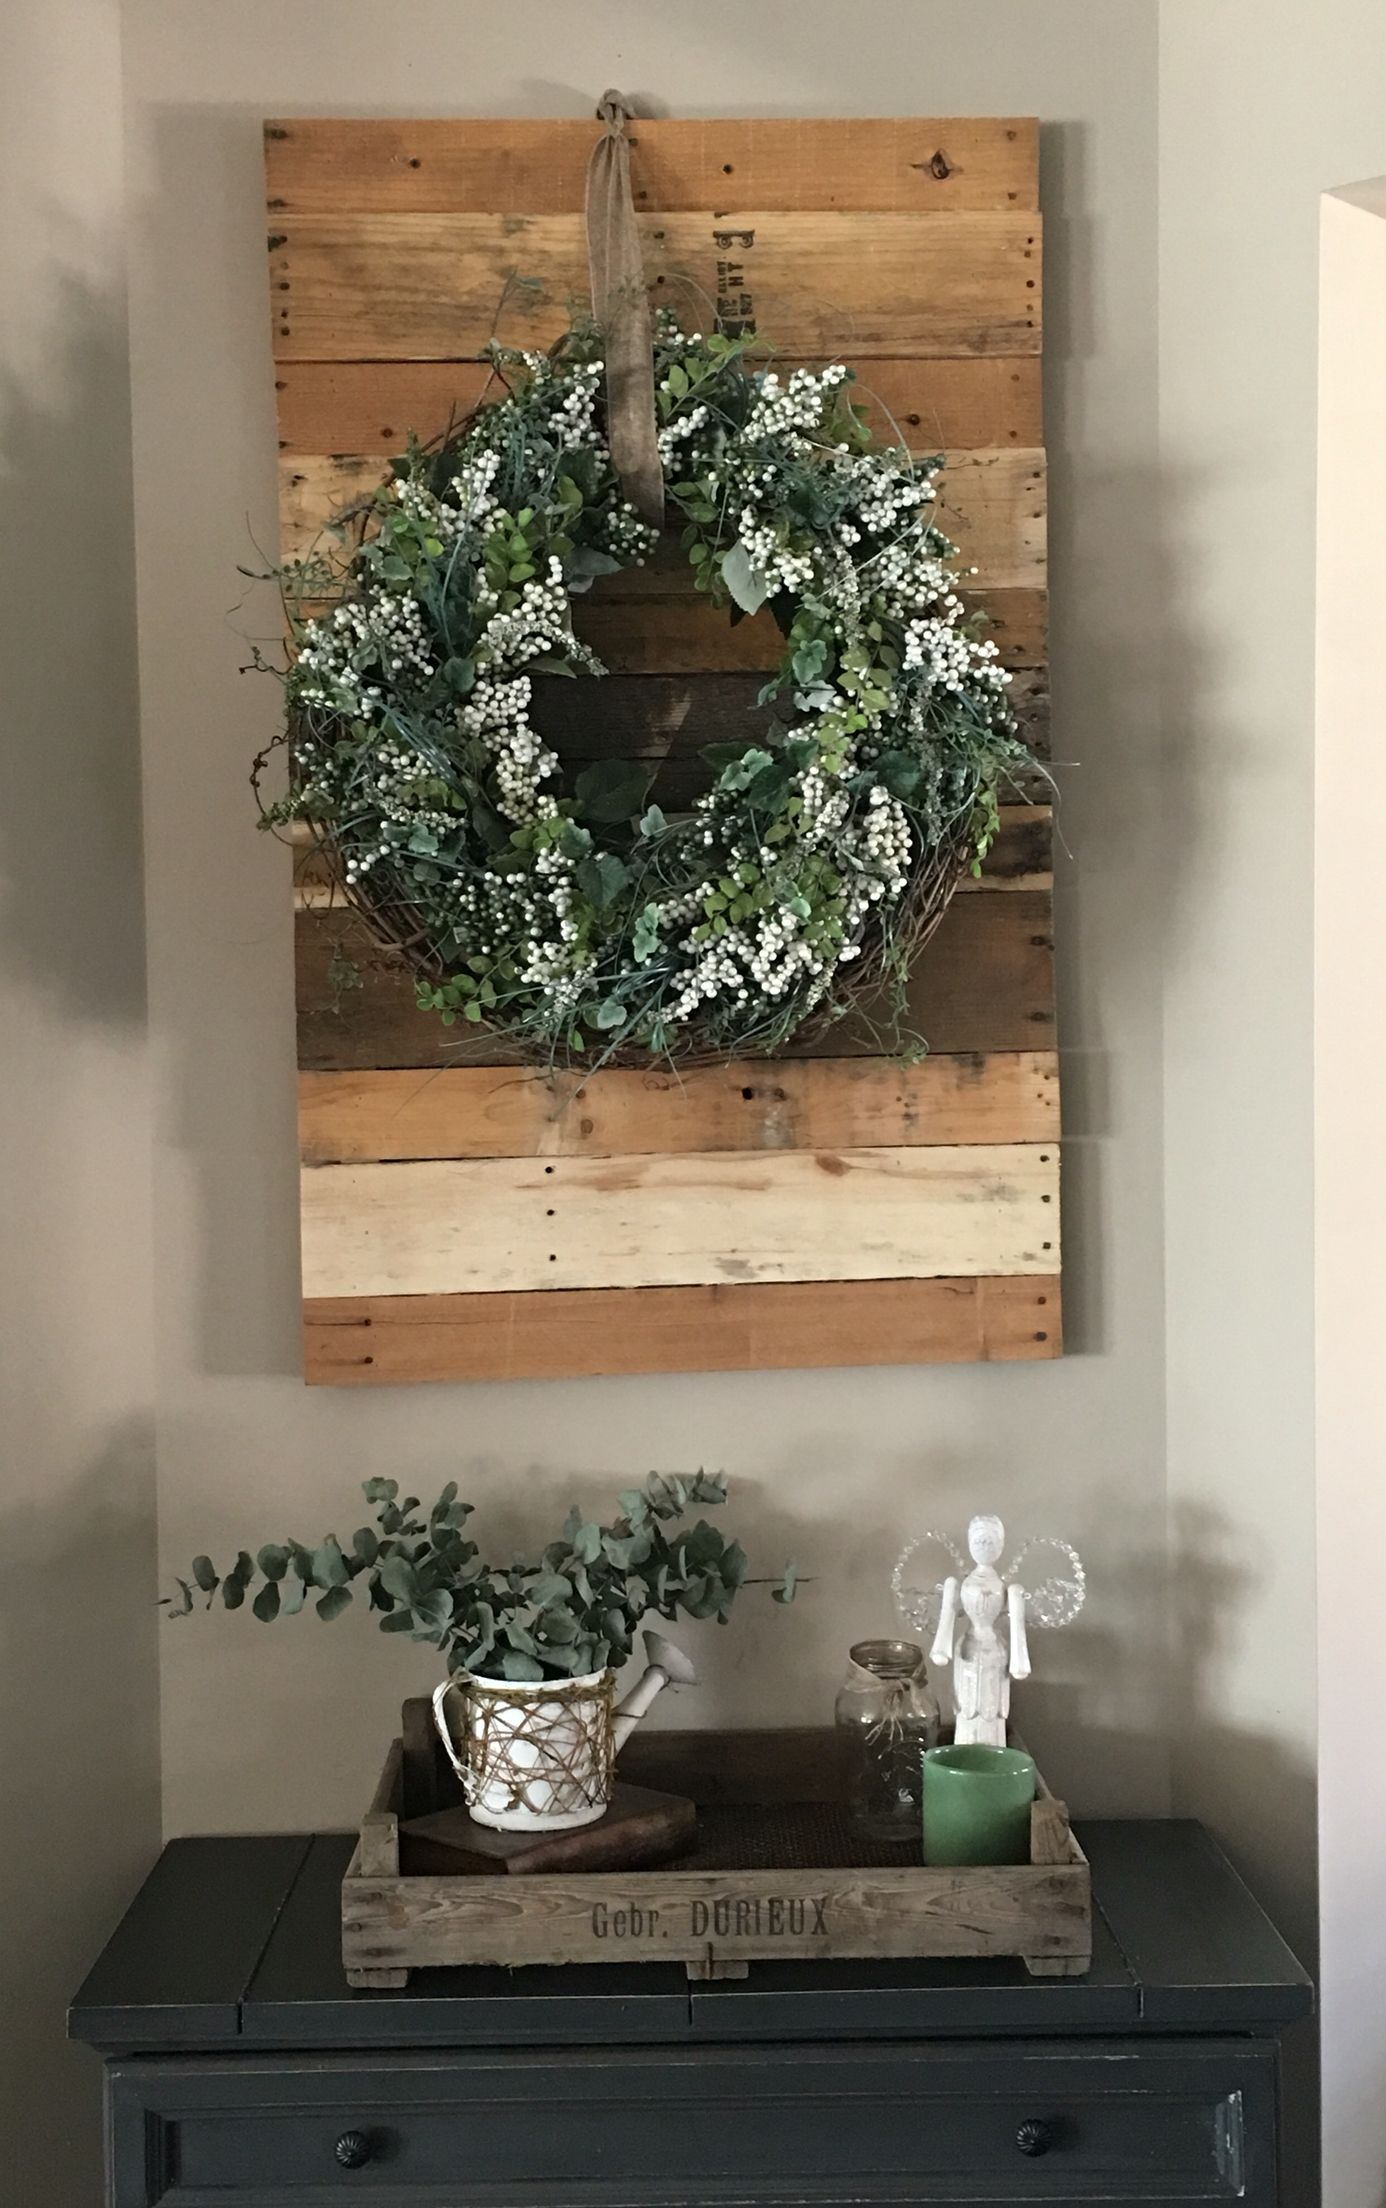 Fixer upper kitchen wall decor - Another Idea For That Weird Wall In The Kitchen Pallet Wall With Hanging Wreath Also Have A Tray That I Bought From Magnolia Farms